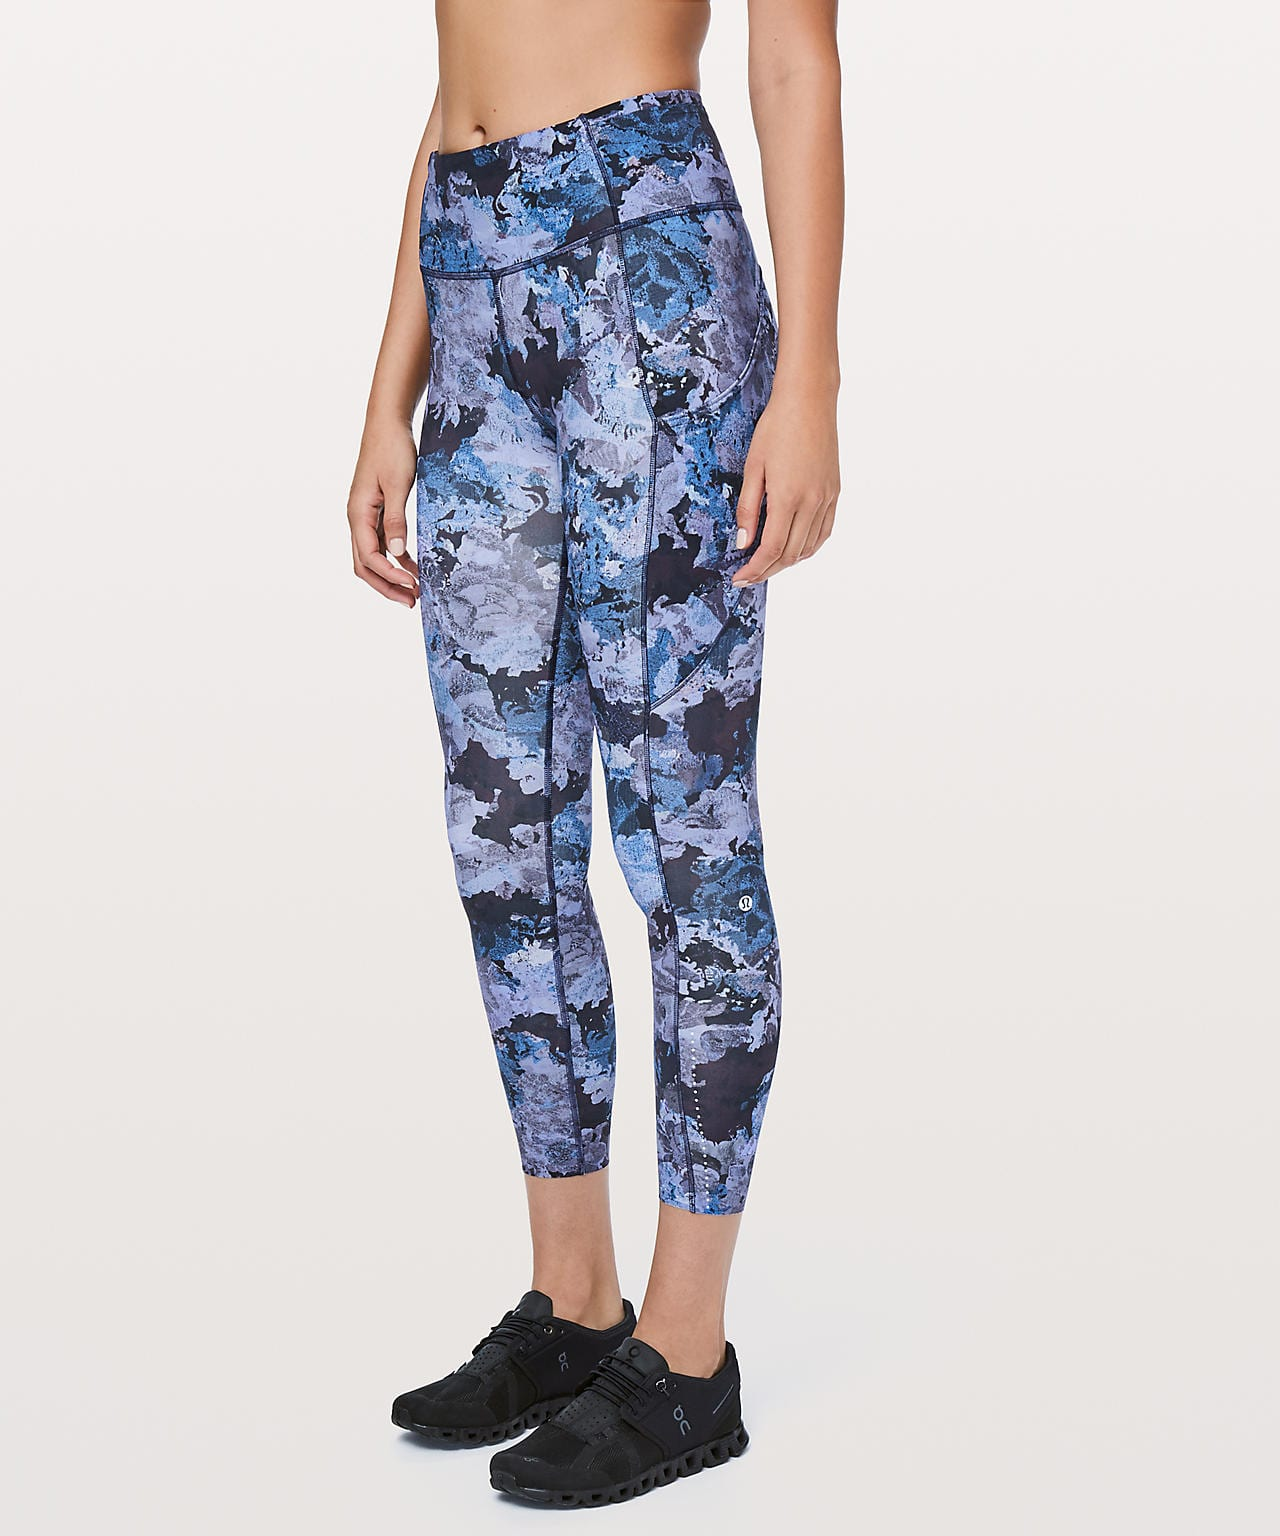 Lululemon Upload, Fast & Free Tight Screen Camo Multi